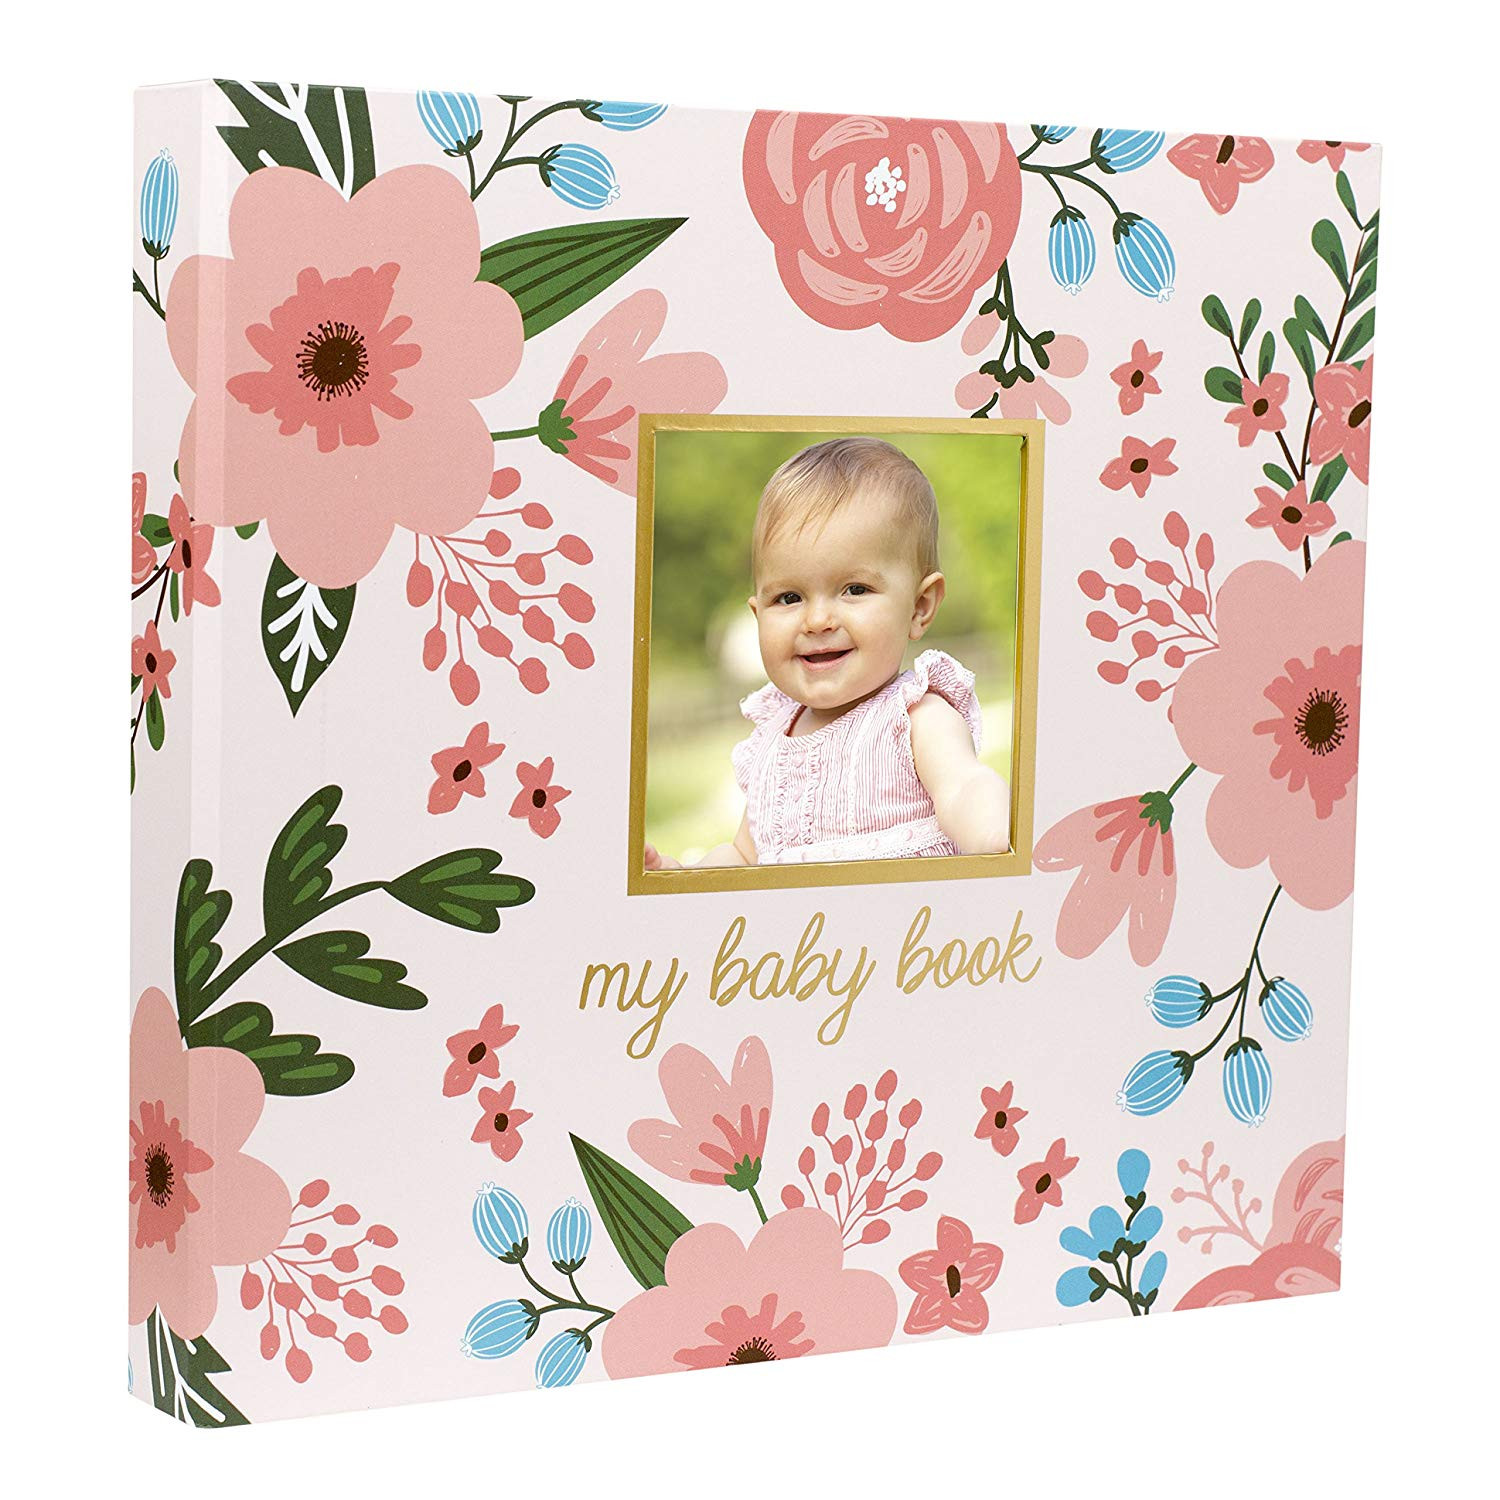 Buy and Send Flowers Online Luxury Amazon Pearhead Memory Book with Included Baby Belly Stickers